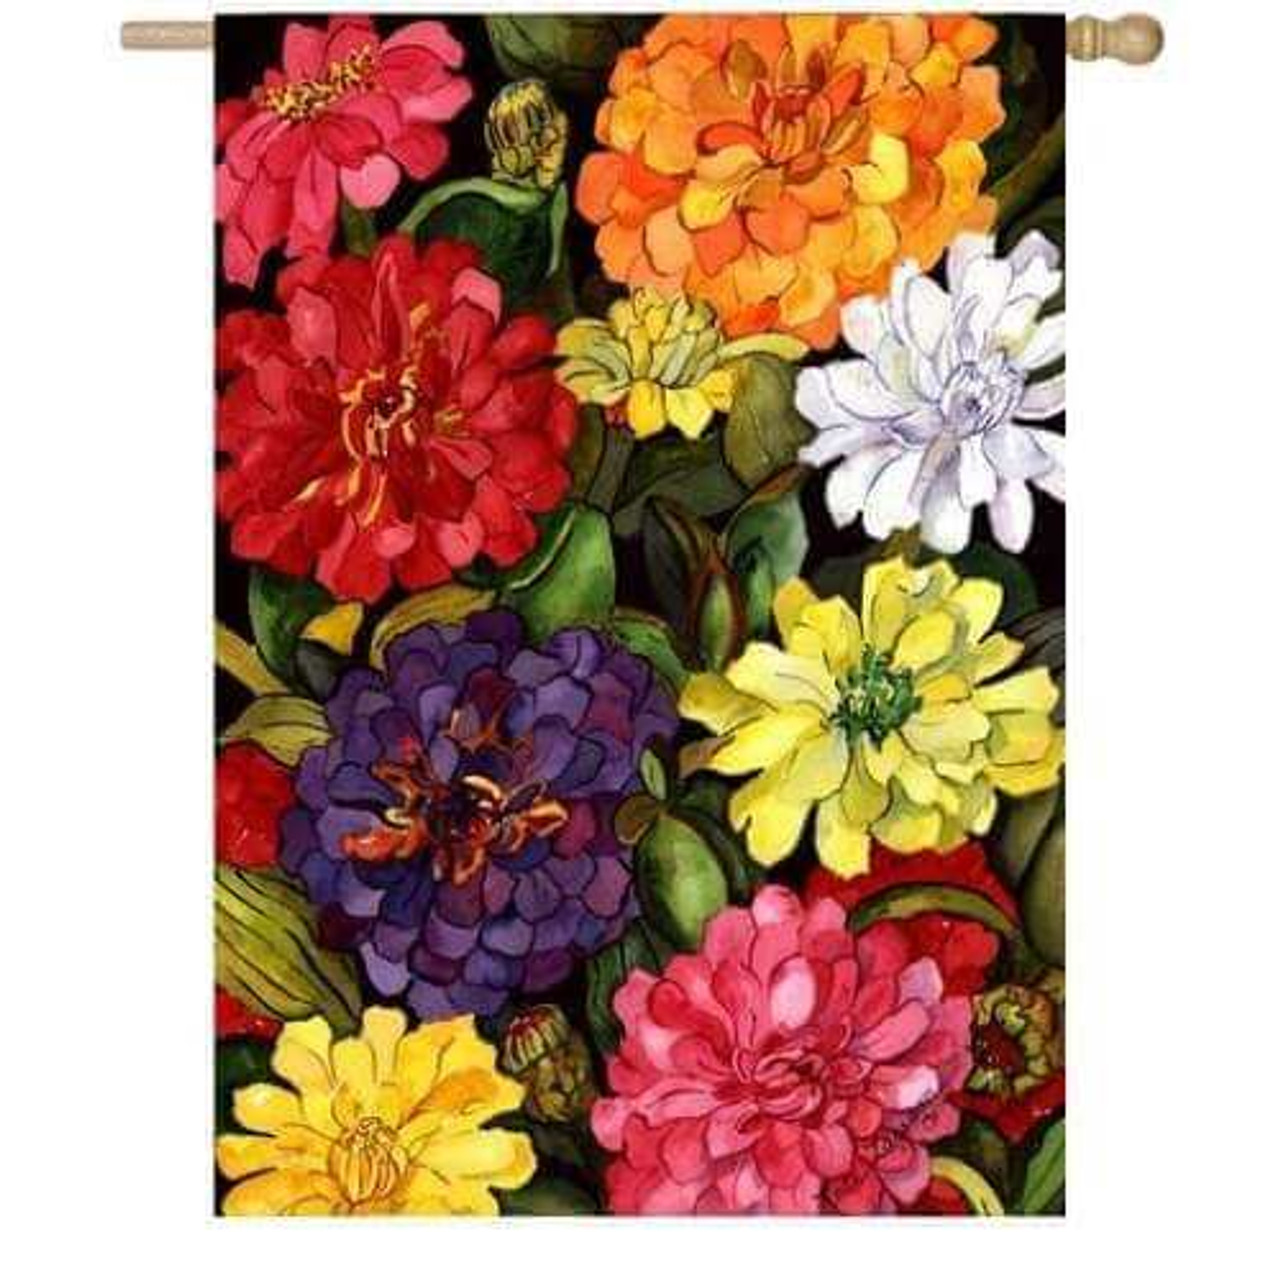 Zippy Zinnias House Flag with red, pink, orange, white, yellow, purple, and white zinnias with green leaves in background